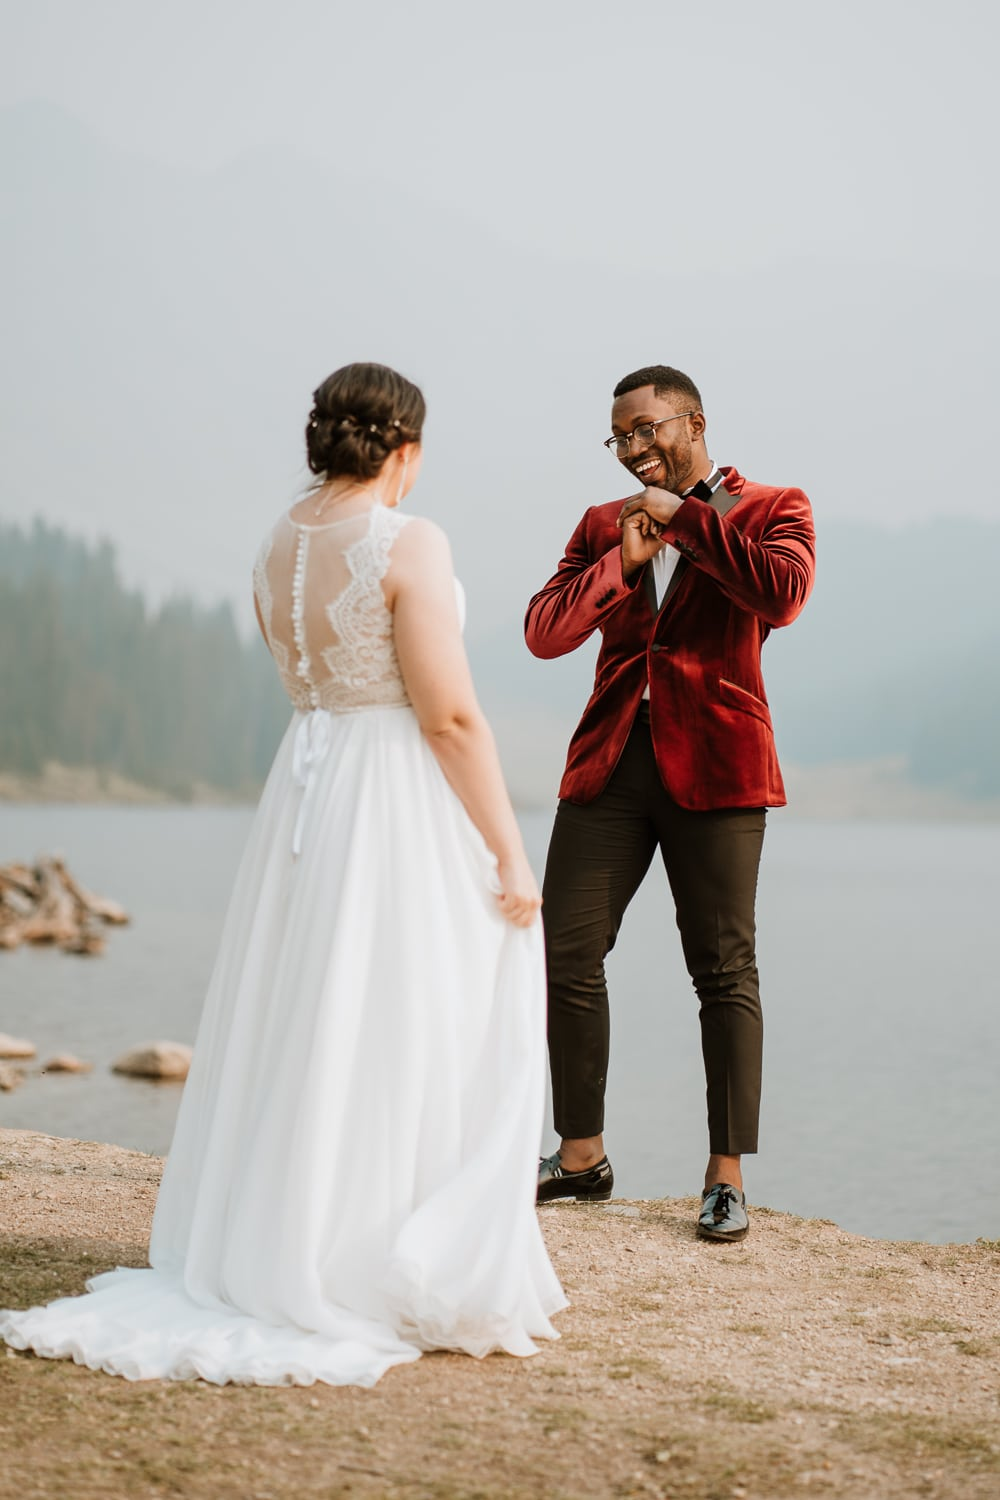 The groom busted into a dance after seeing his new bride in her wedding dress. This wedding was challenging as we learned how to plan an elopement during Colorado wildfires!